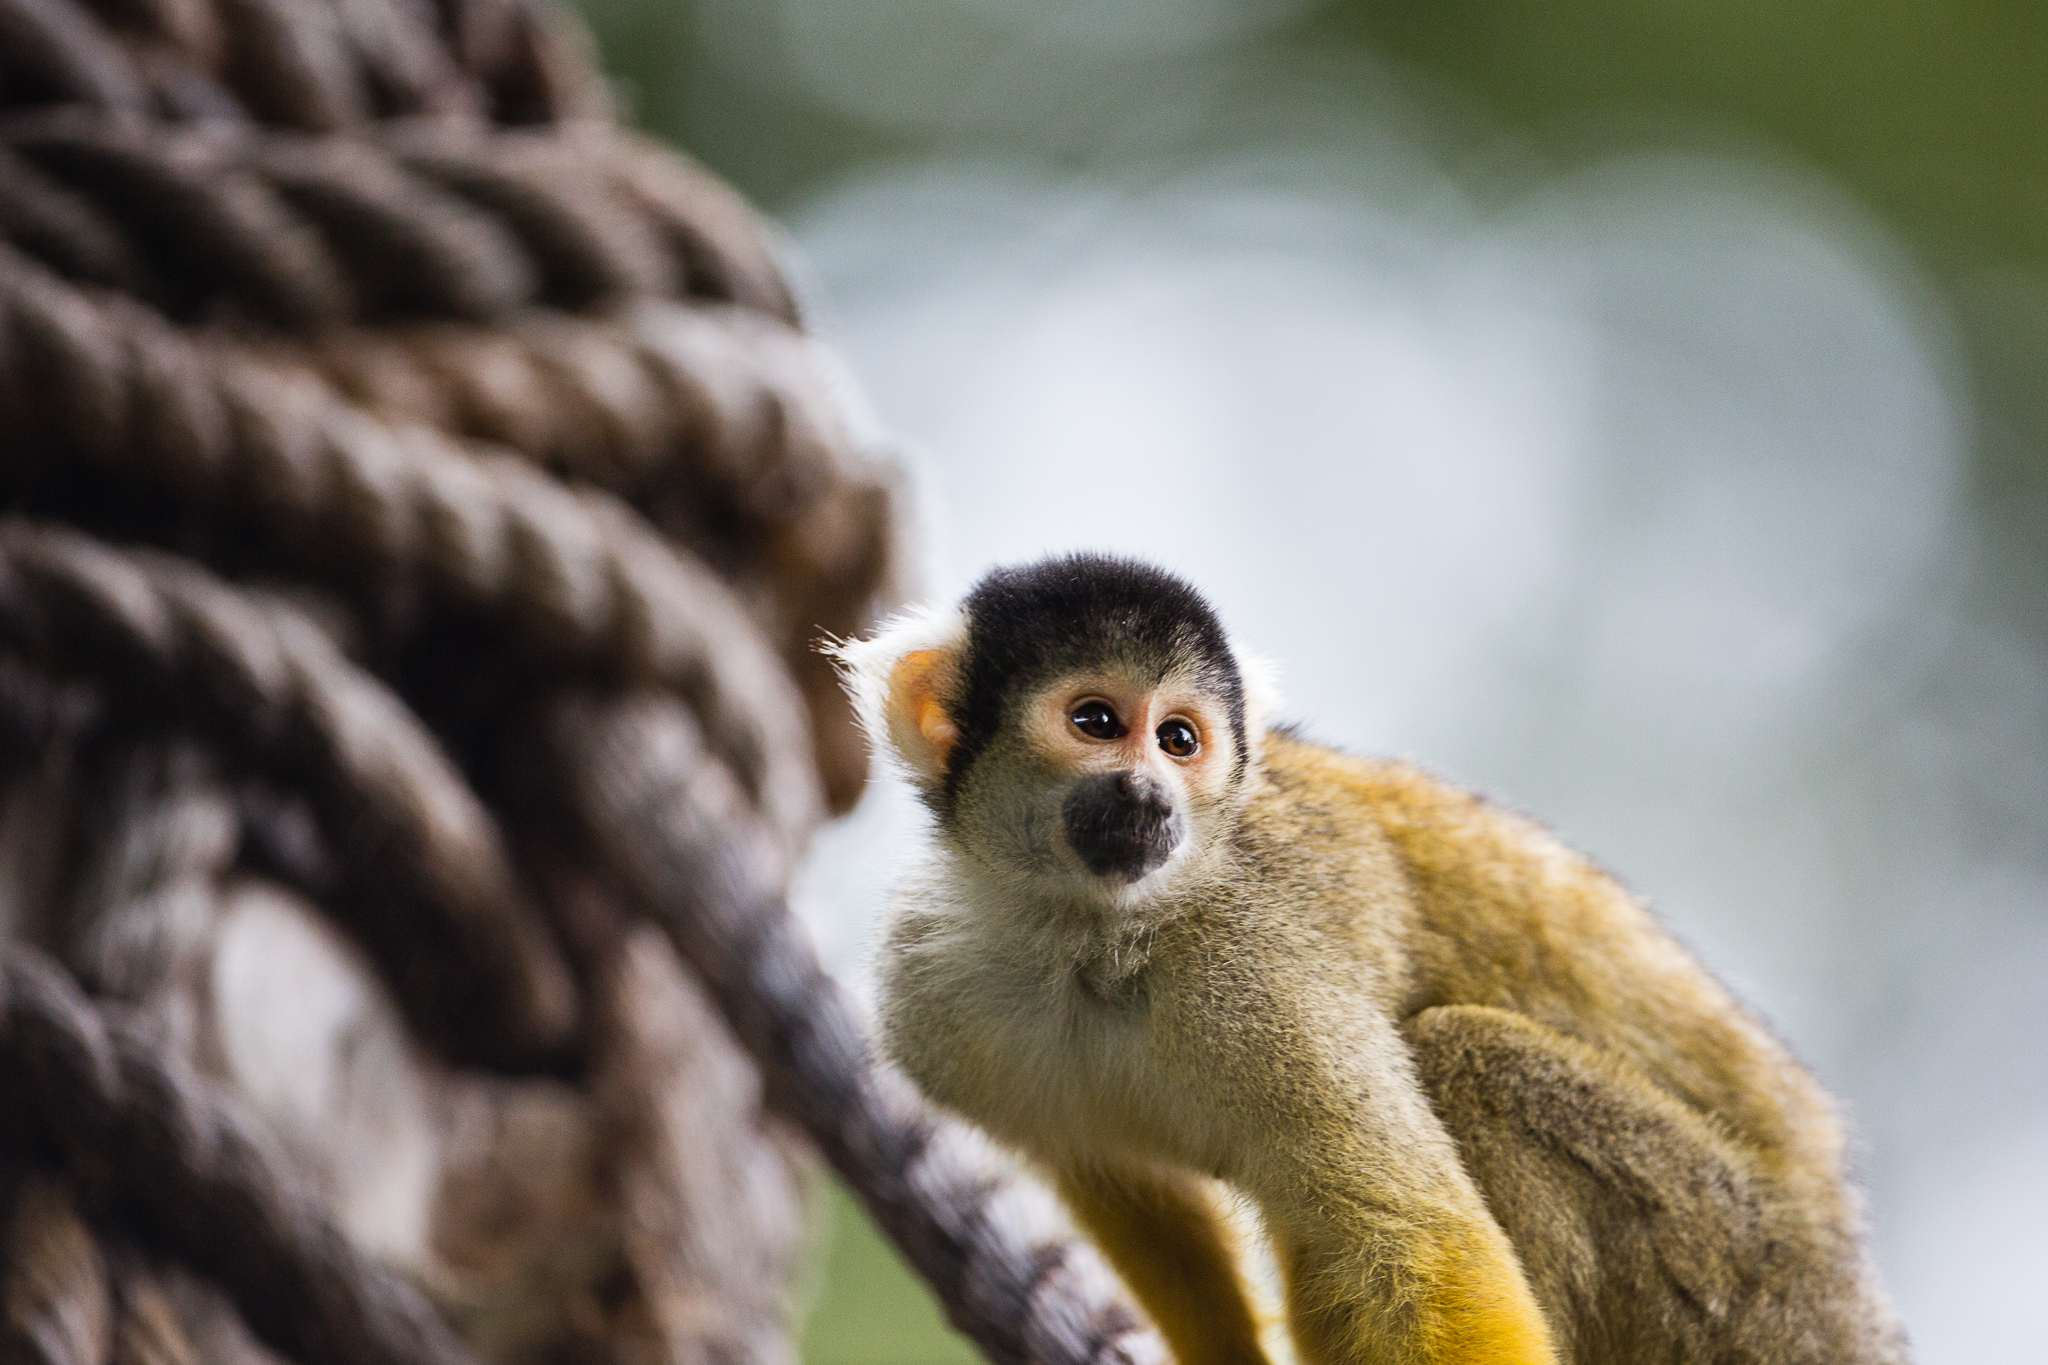 Monkey at The London Zoo